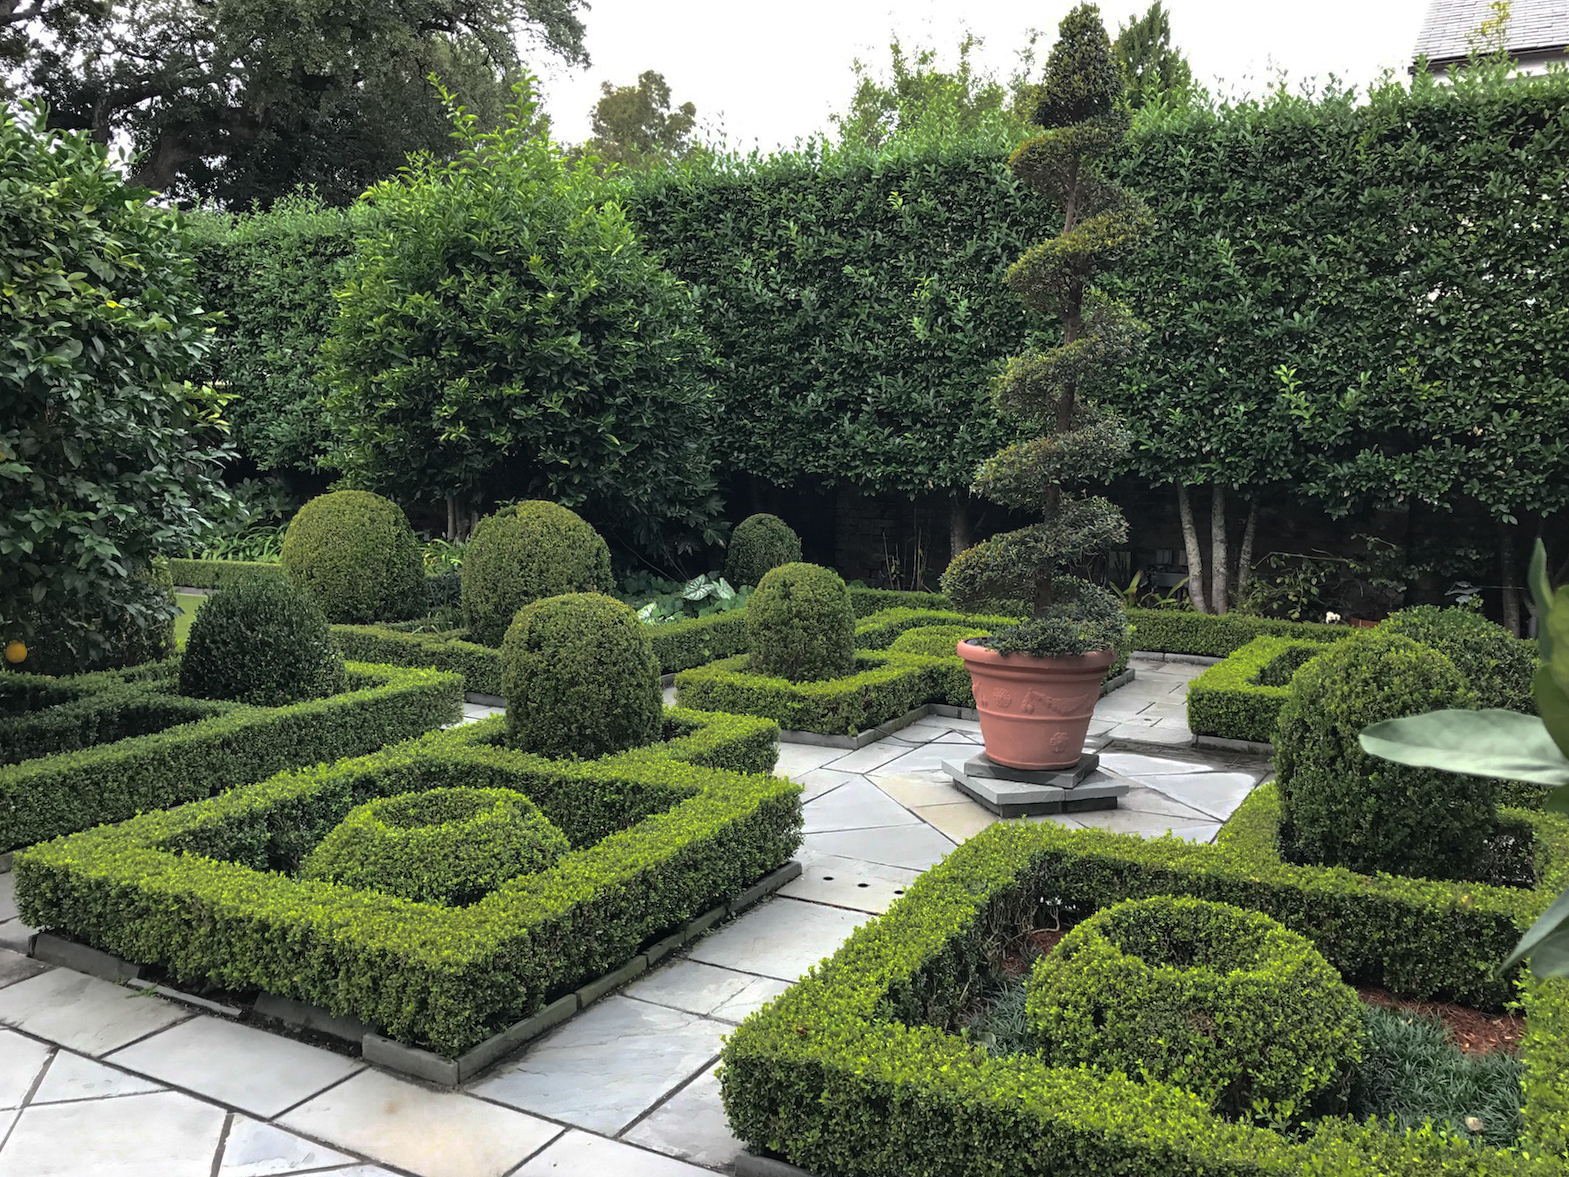 Garden Landscaping Newport : Inspiring garden design rooms with a view private newport